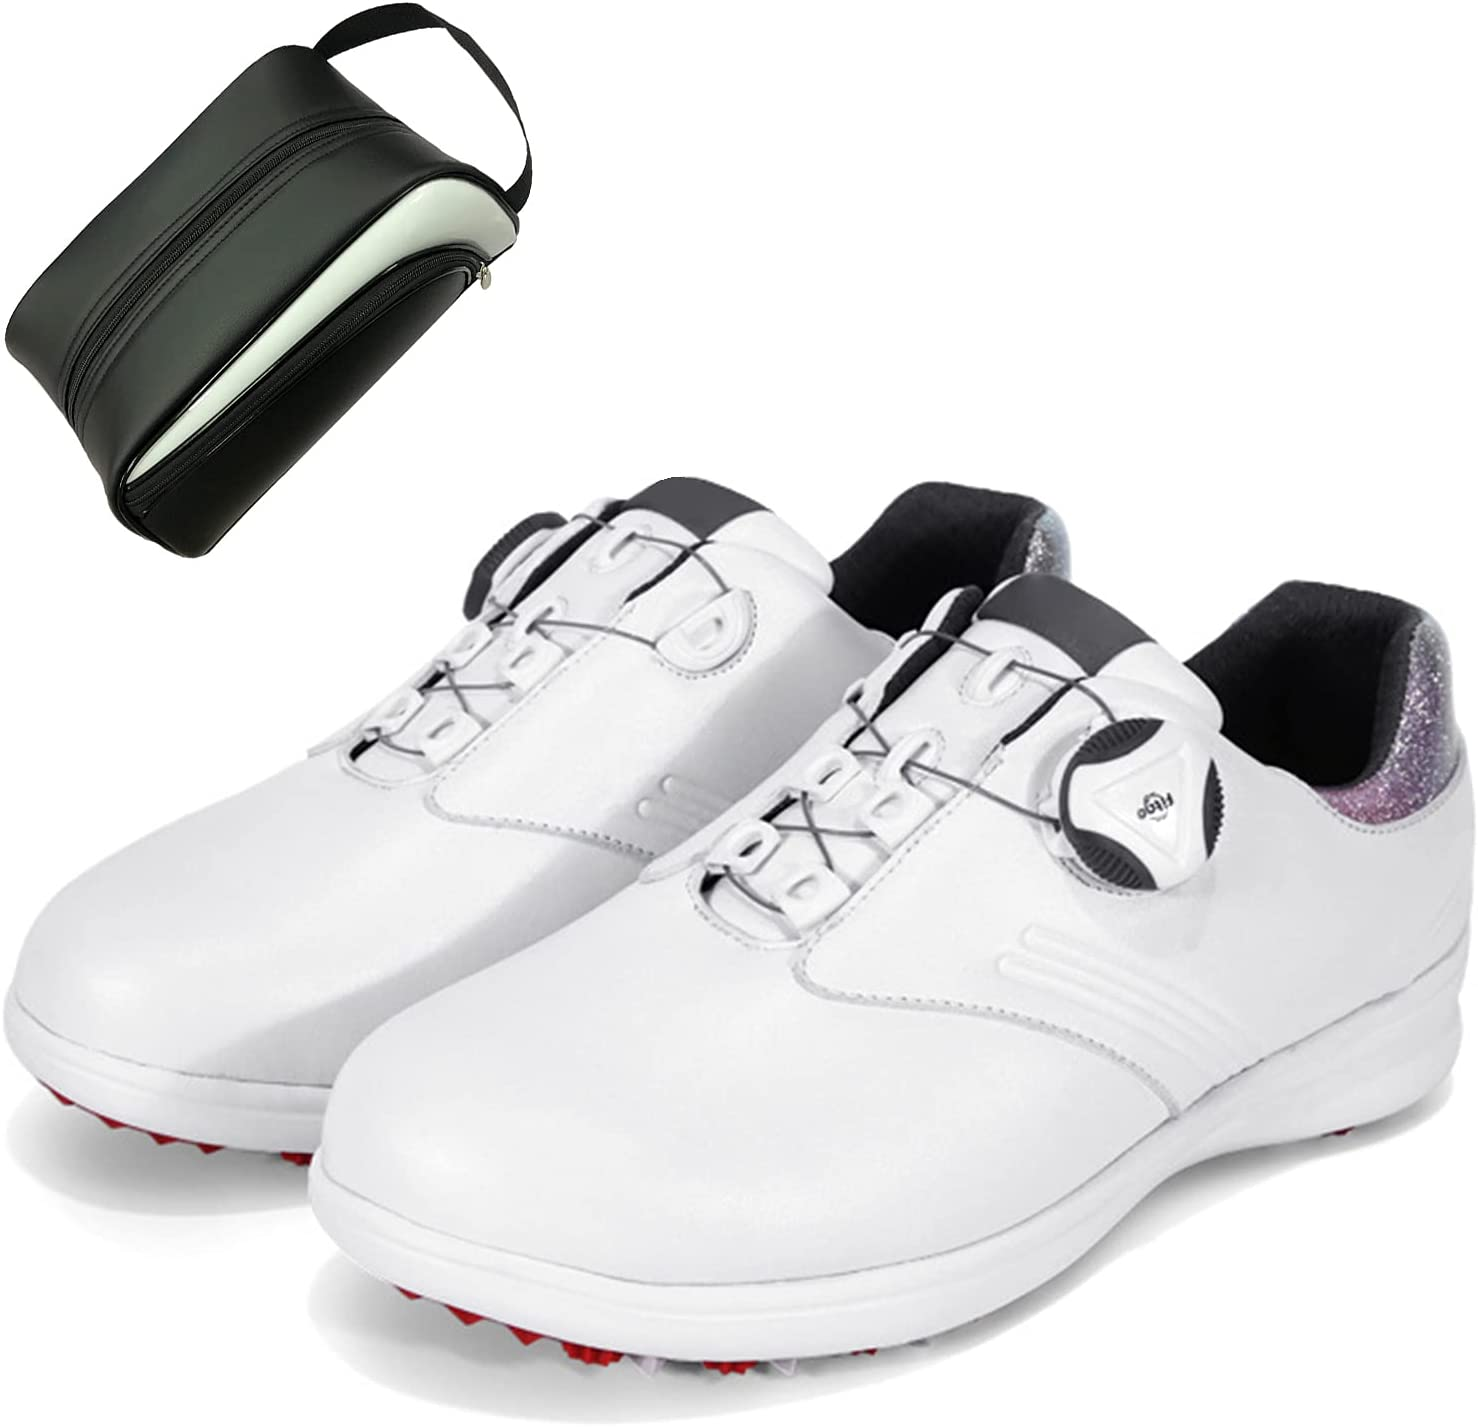 CAMILYIN Women's Store Golf Super Special SALE held Shoess Air Compression 3D Rotating